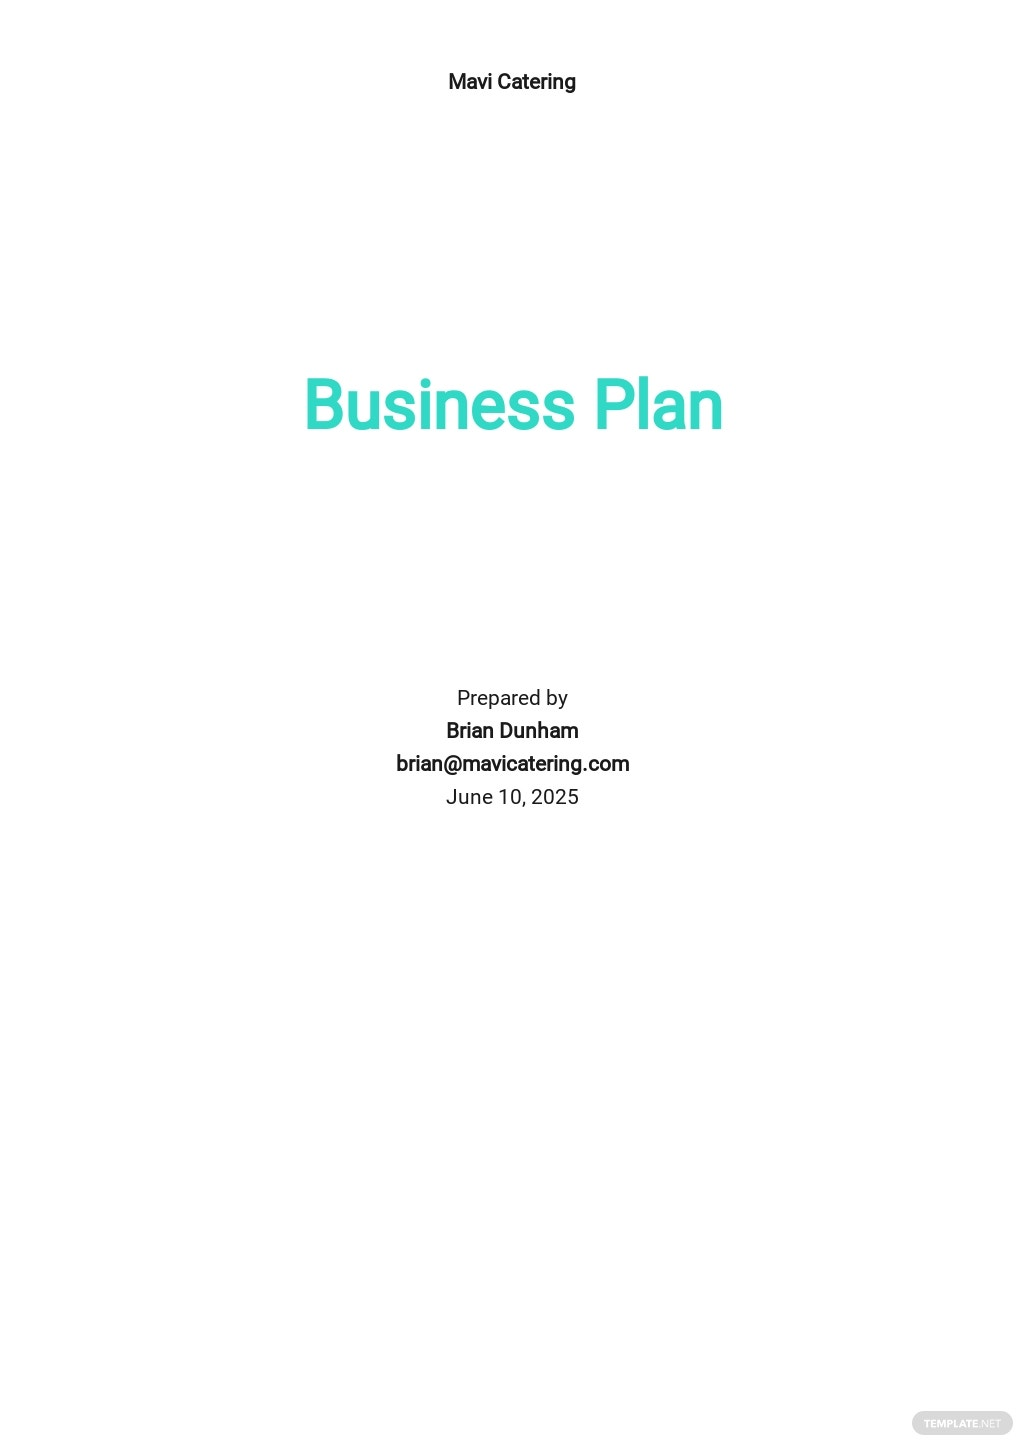 Catering Company Business Plan Template.jpe